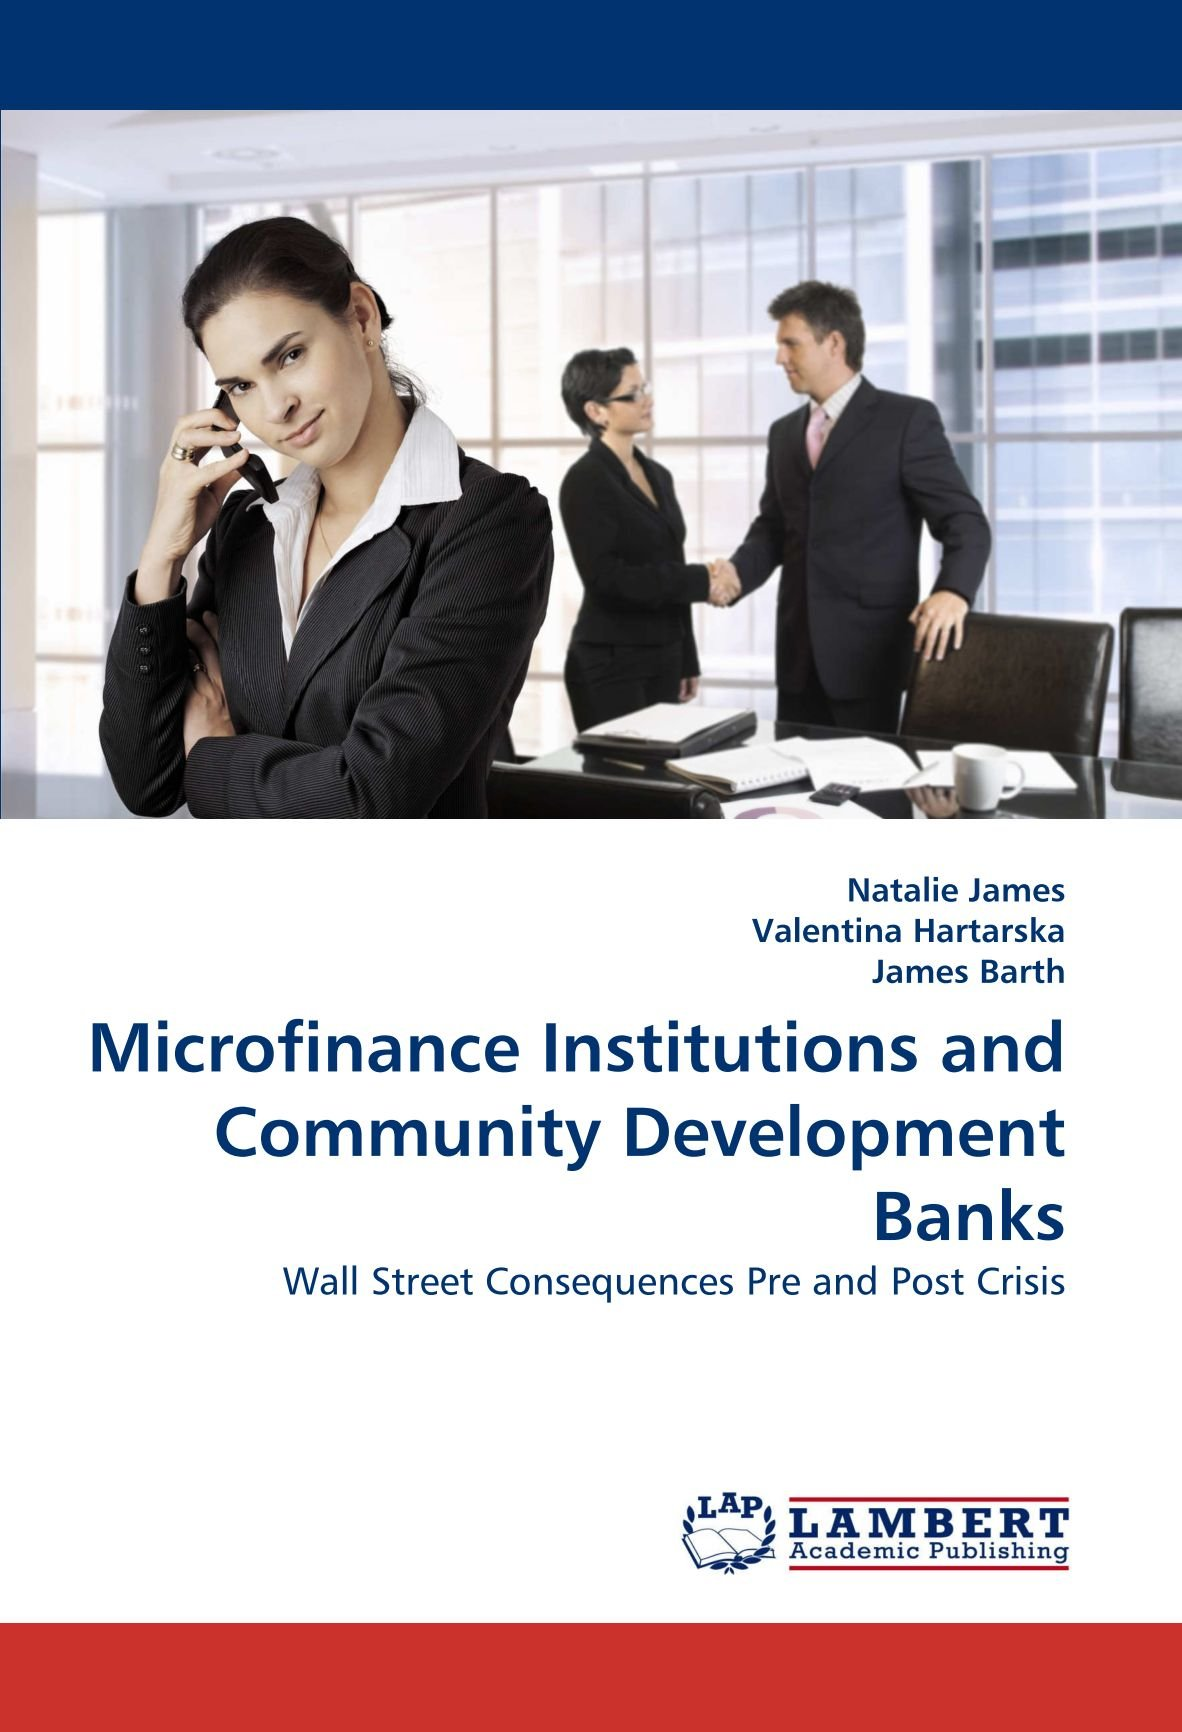 Microfinance Institutions and Community Development Banks: Wall Street Consequences Pre and Post Crisis pdf